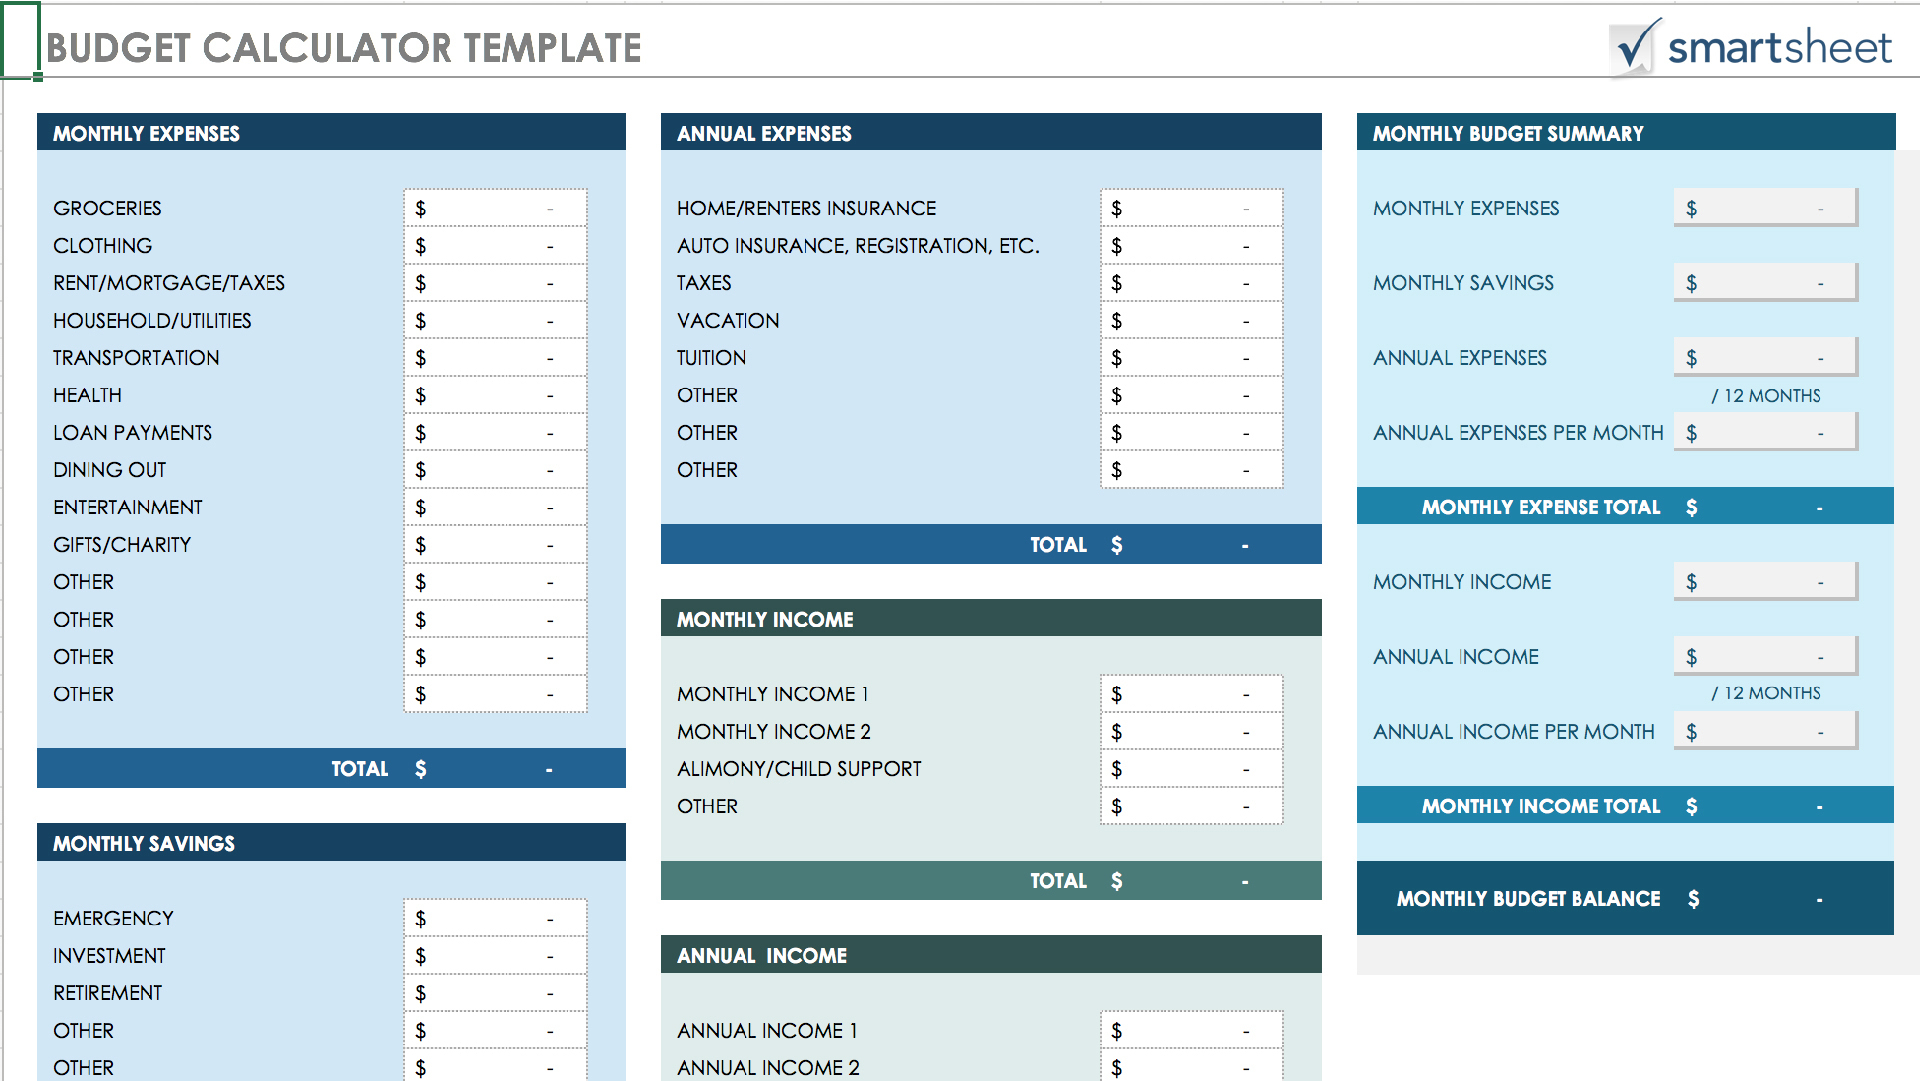 15 Easy To Use Budget Templates | Gobankingrates With Online Budget Calculator Spreadsheet